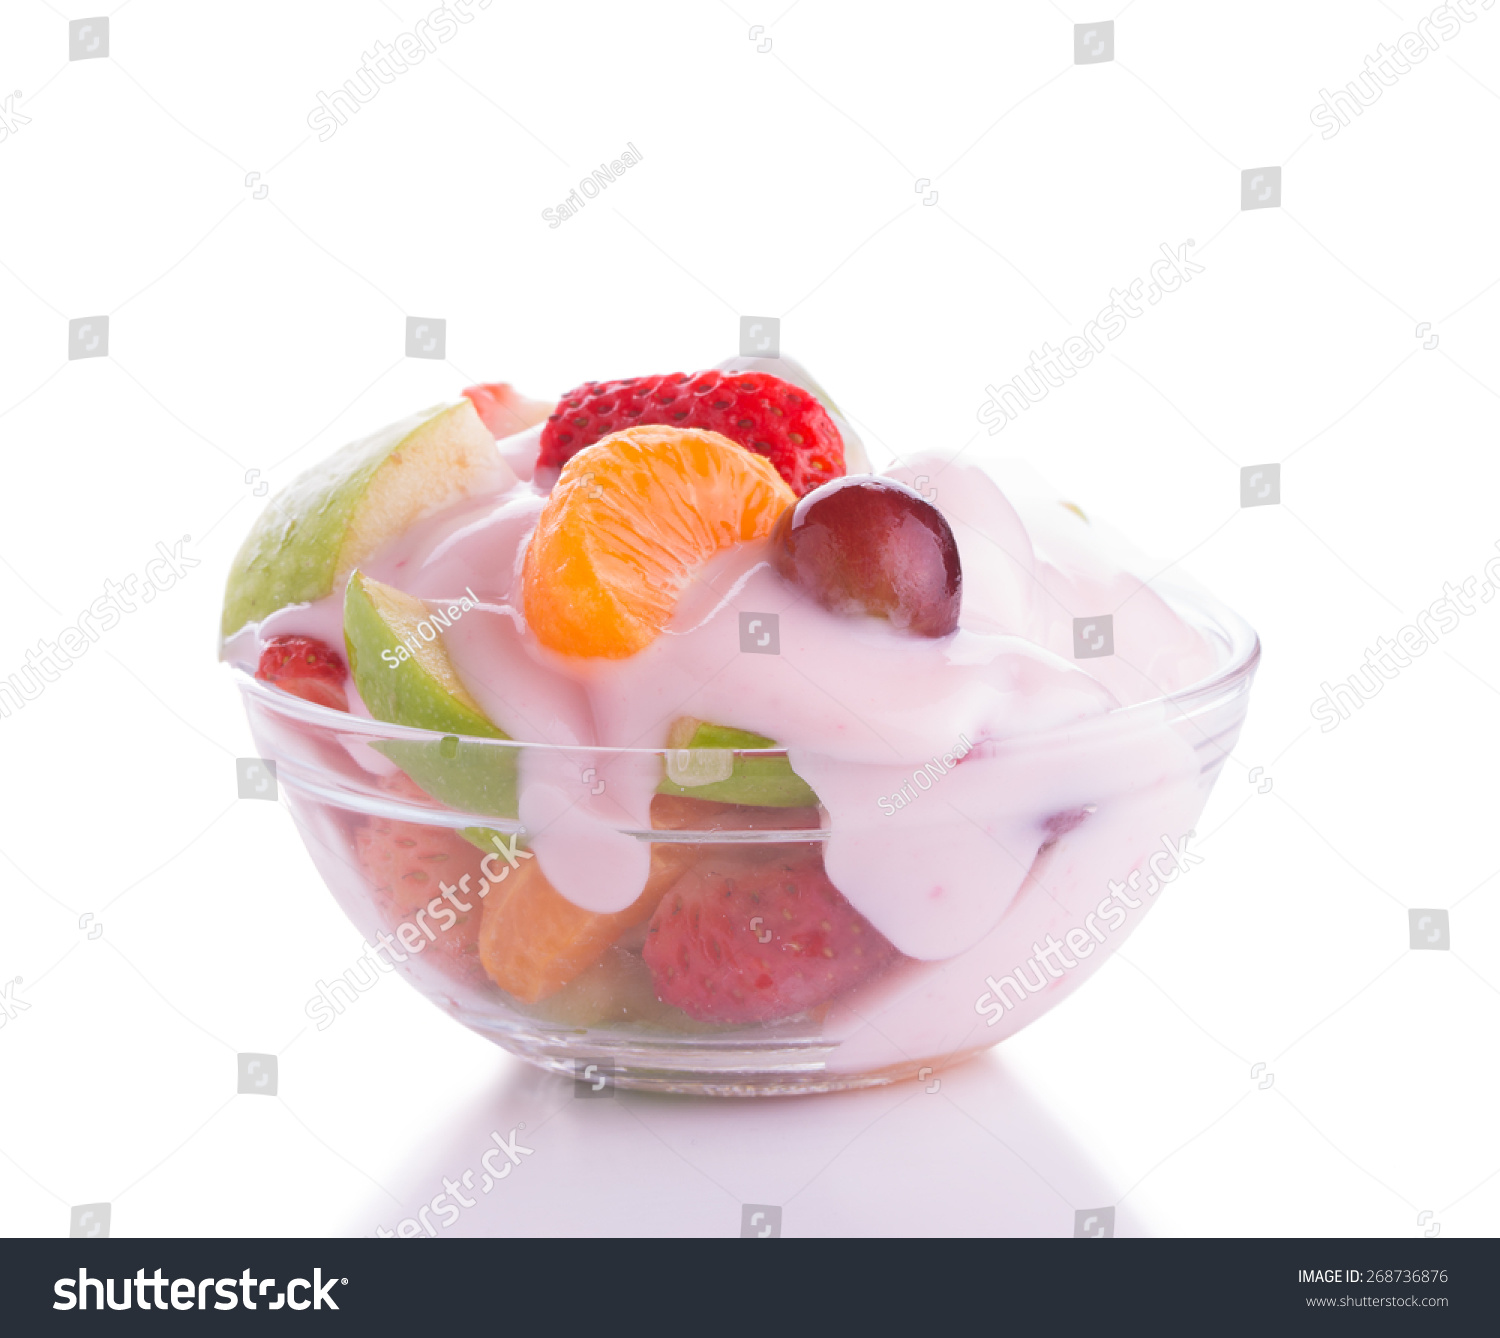 Colorful Fruit Bowl Colorful Fruit Salad In A Glass Bowl Topped With Pink